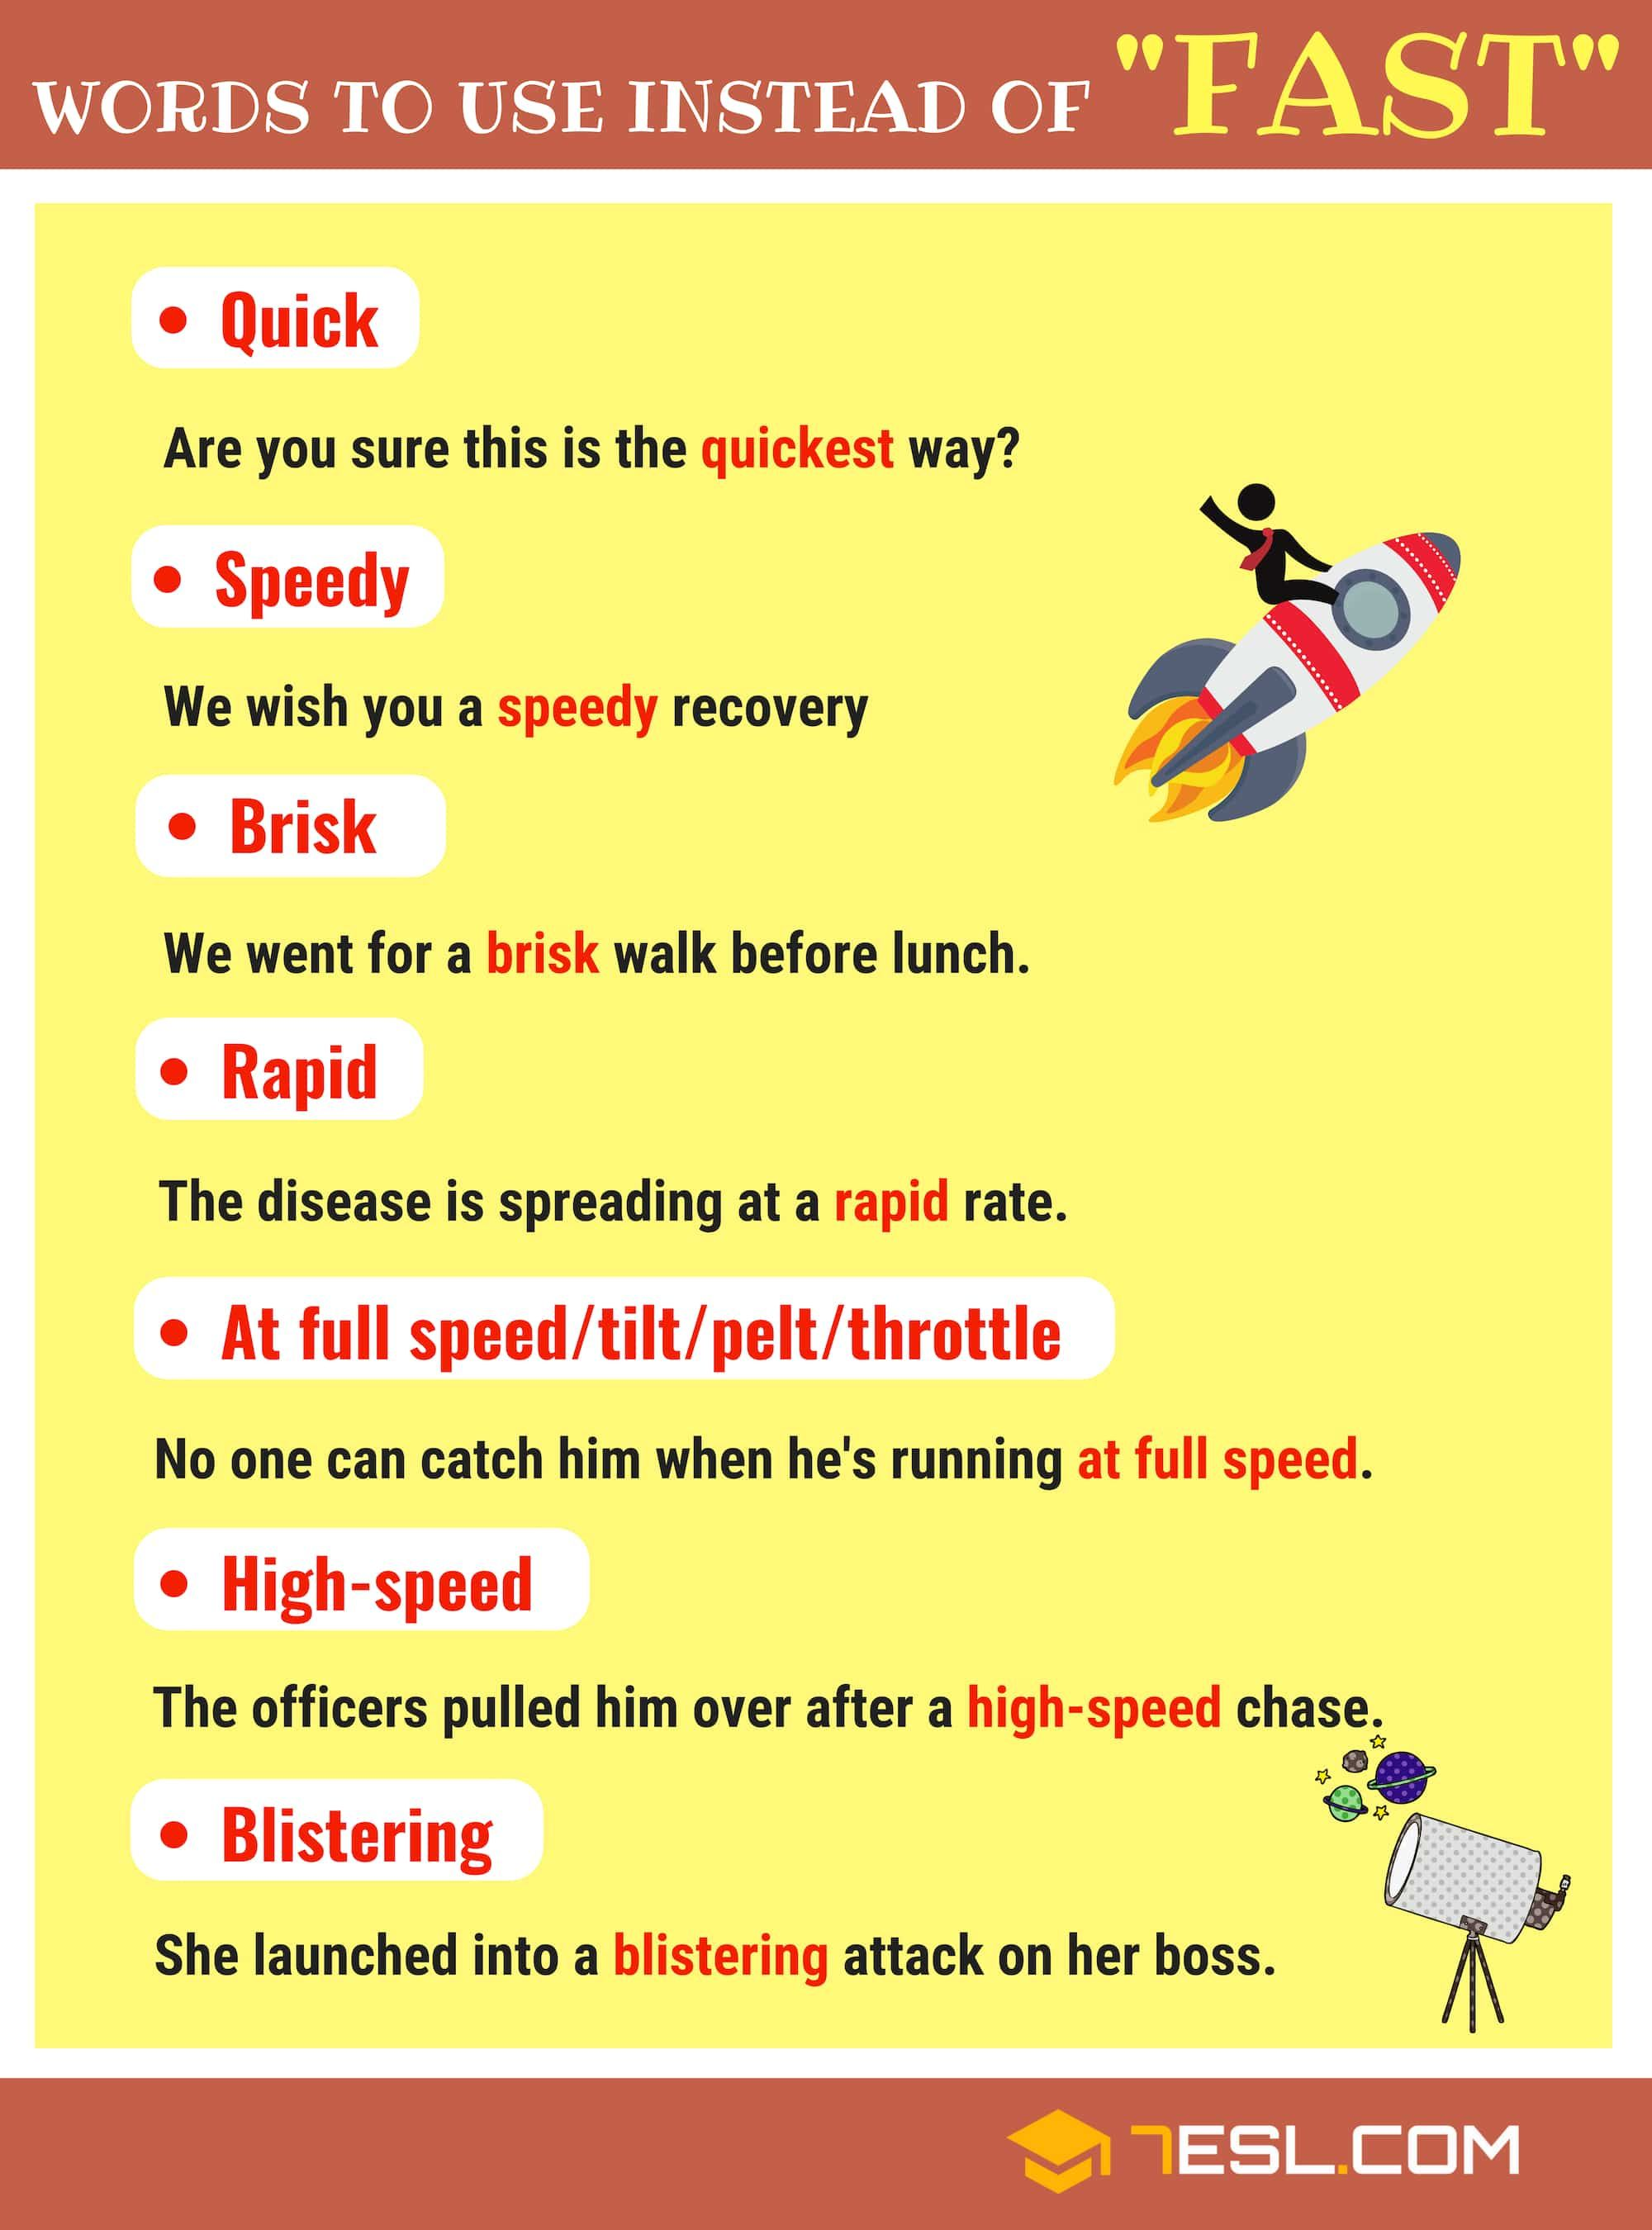 fast synonyms list of